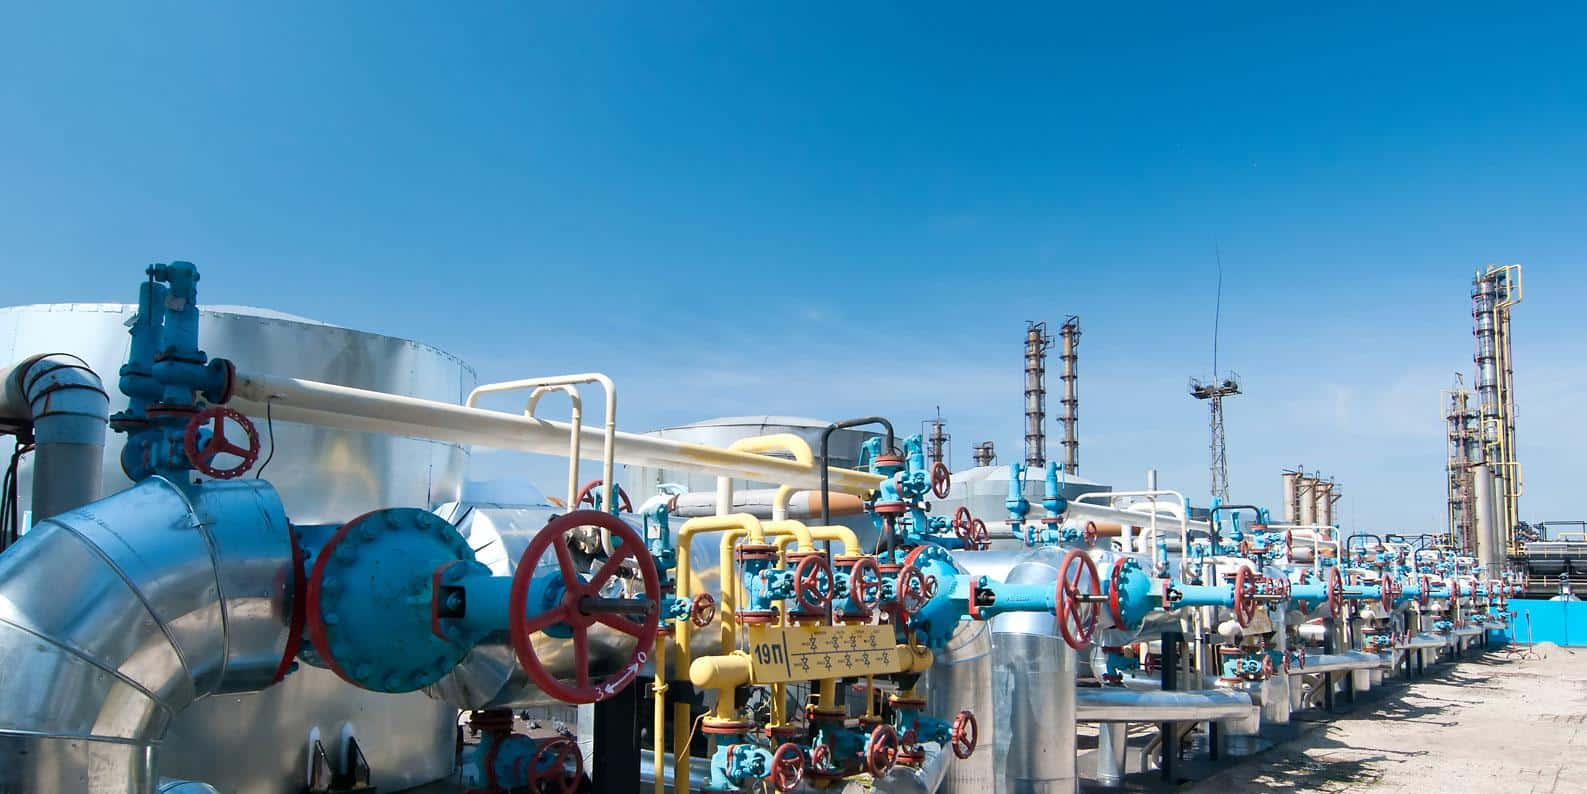 waterworks pipes and valves with gaskets